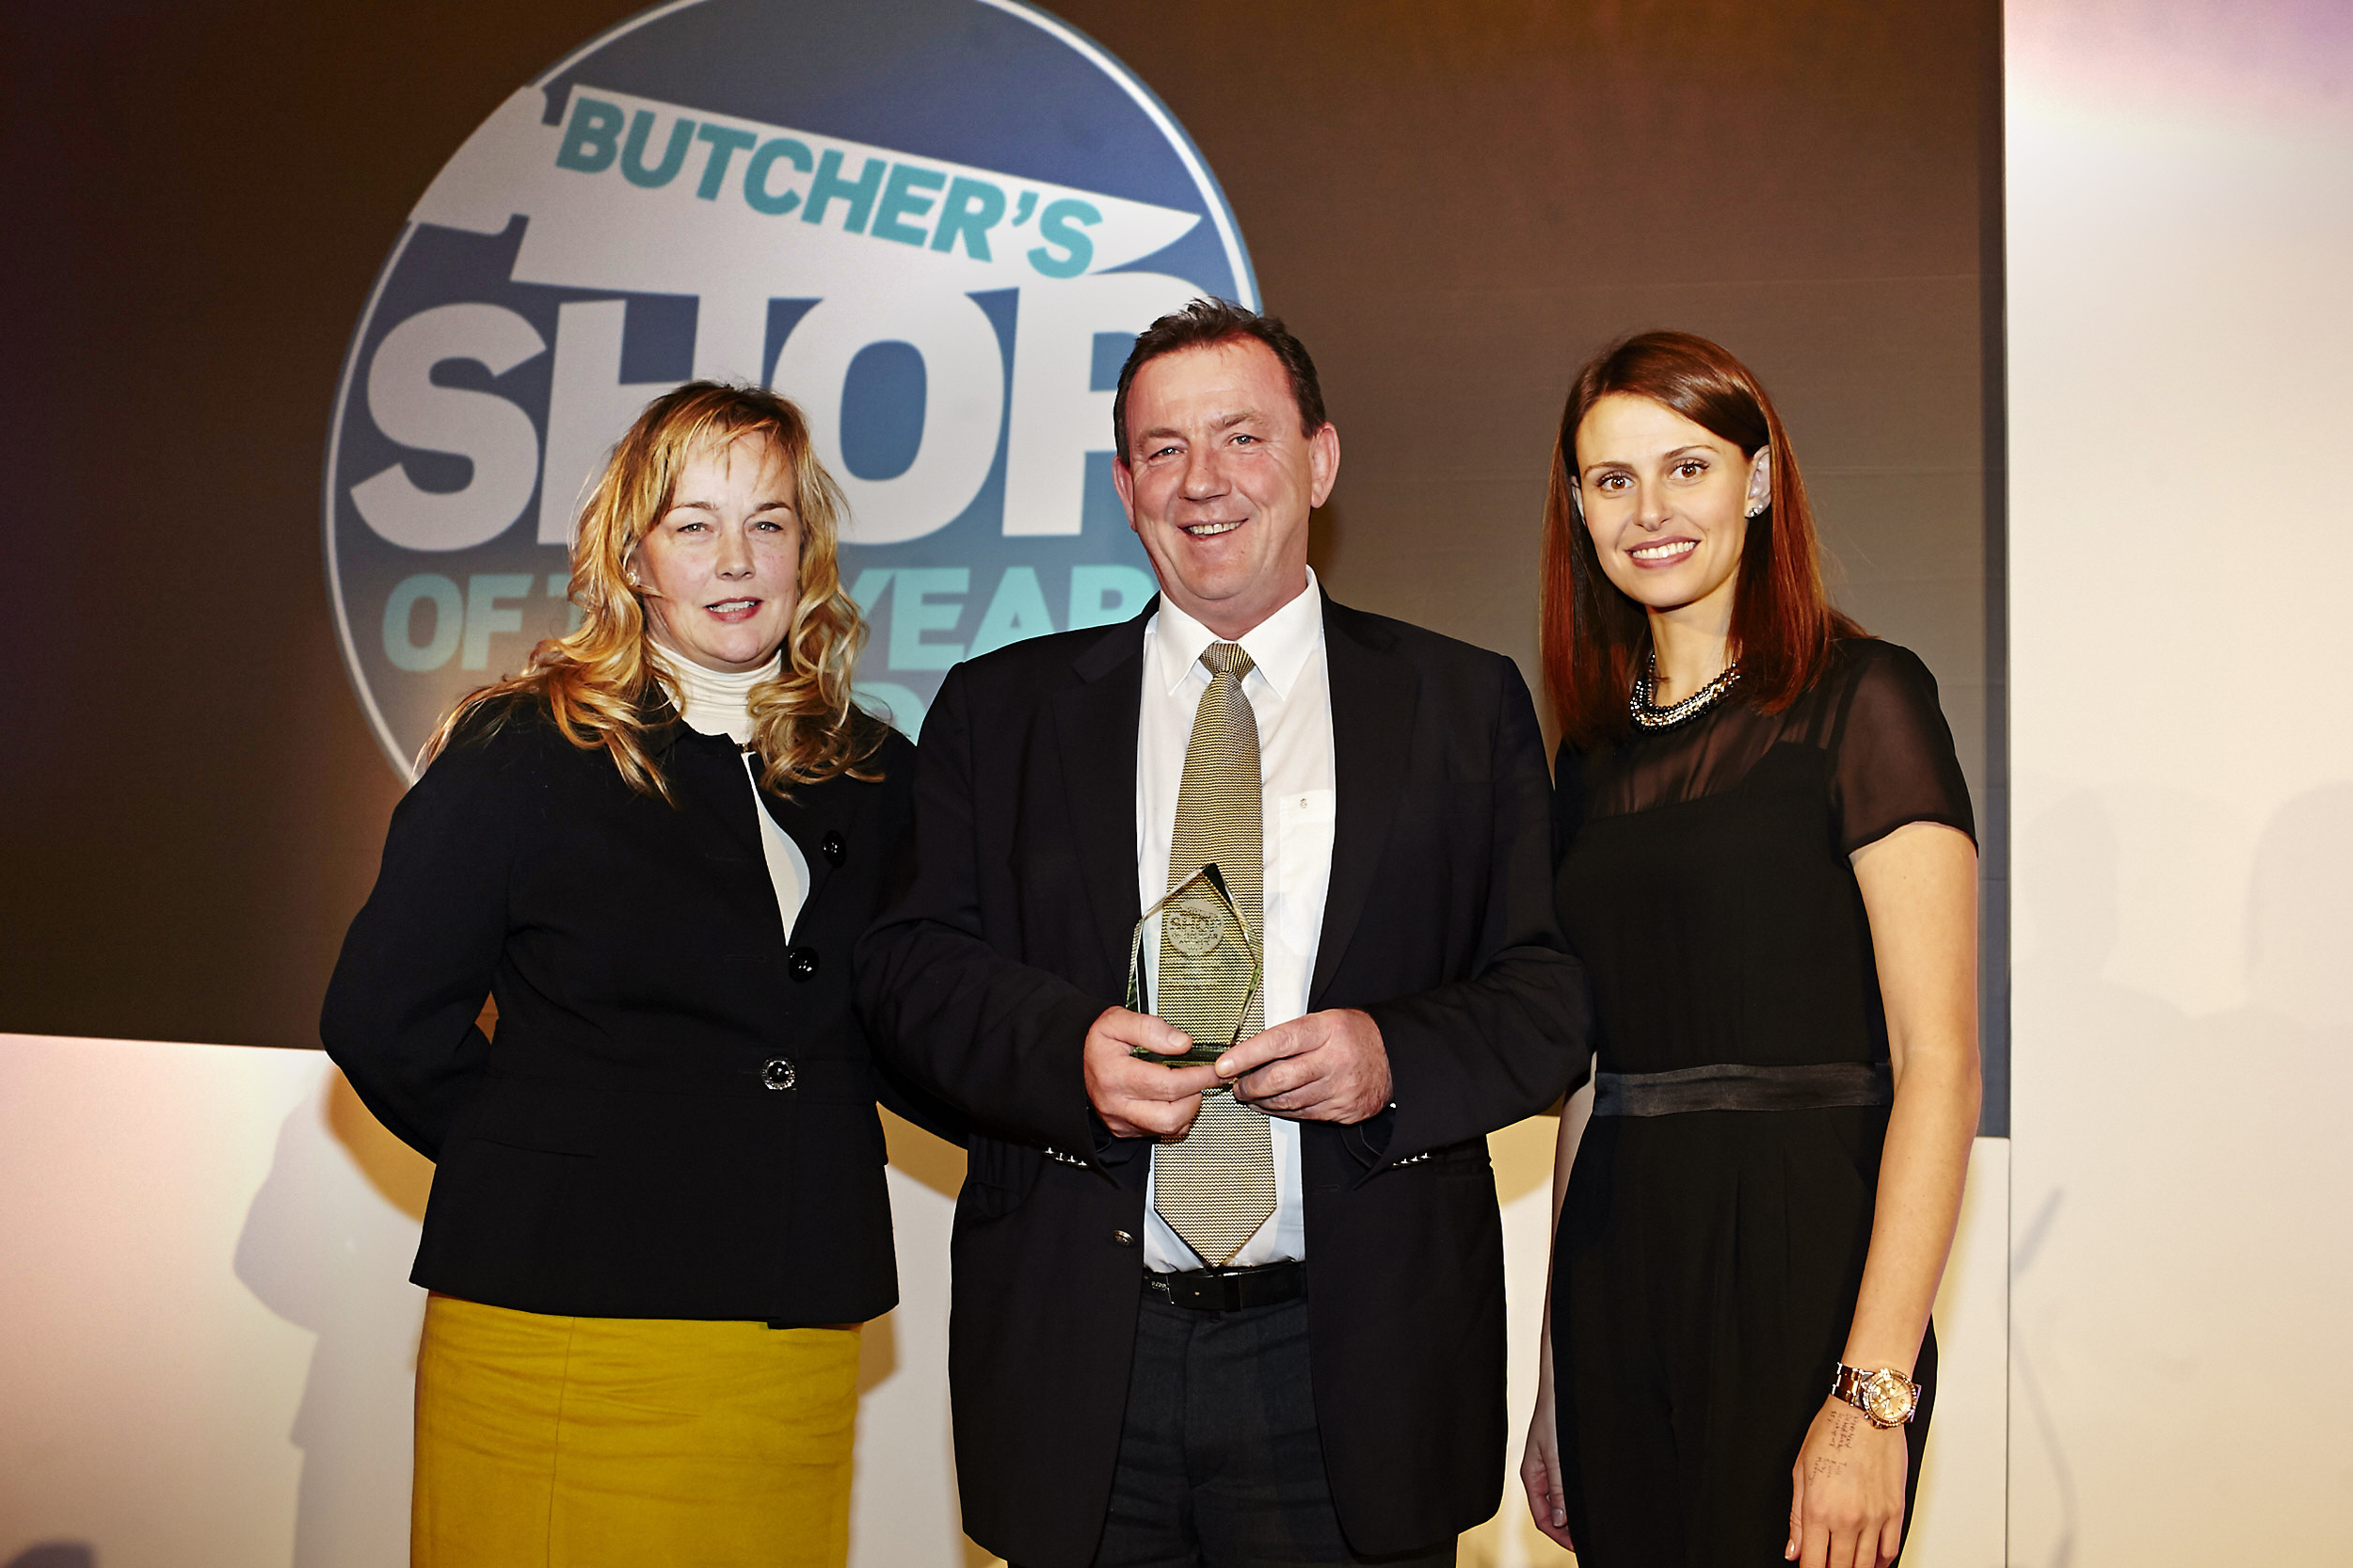 Butcher's Shop of the Year Innovation Award